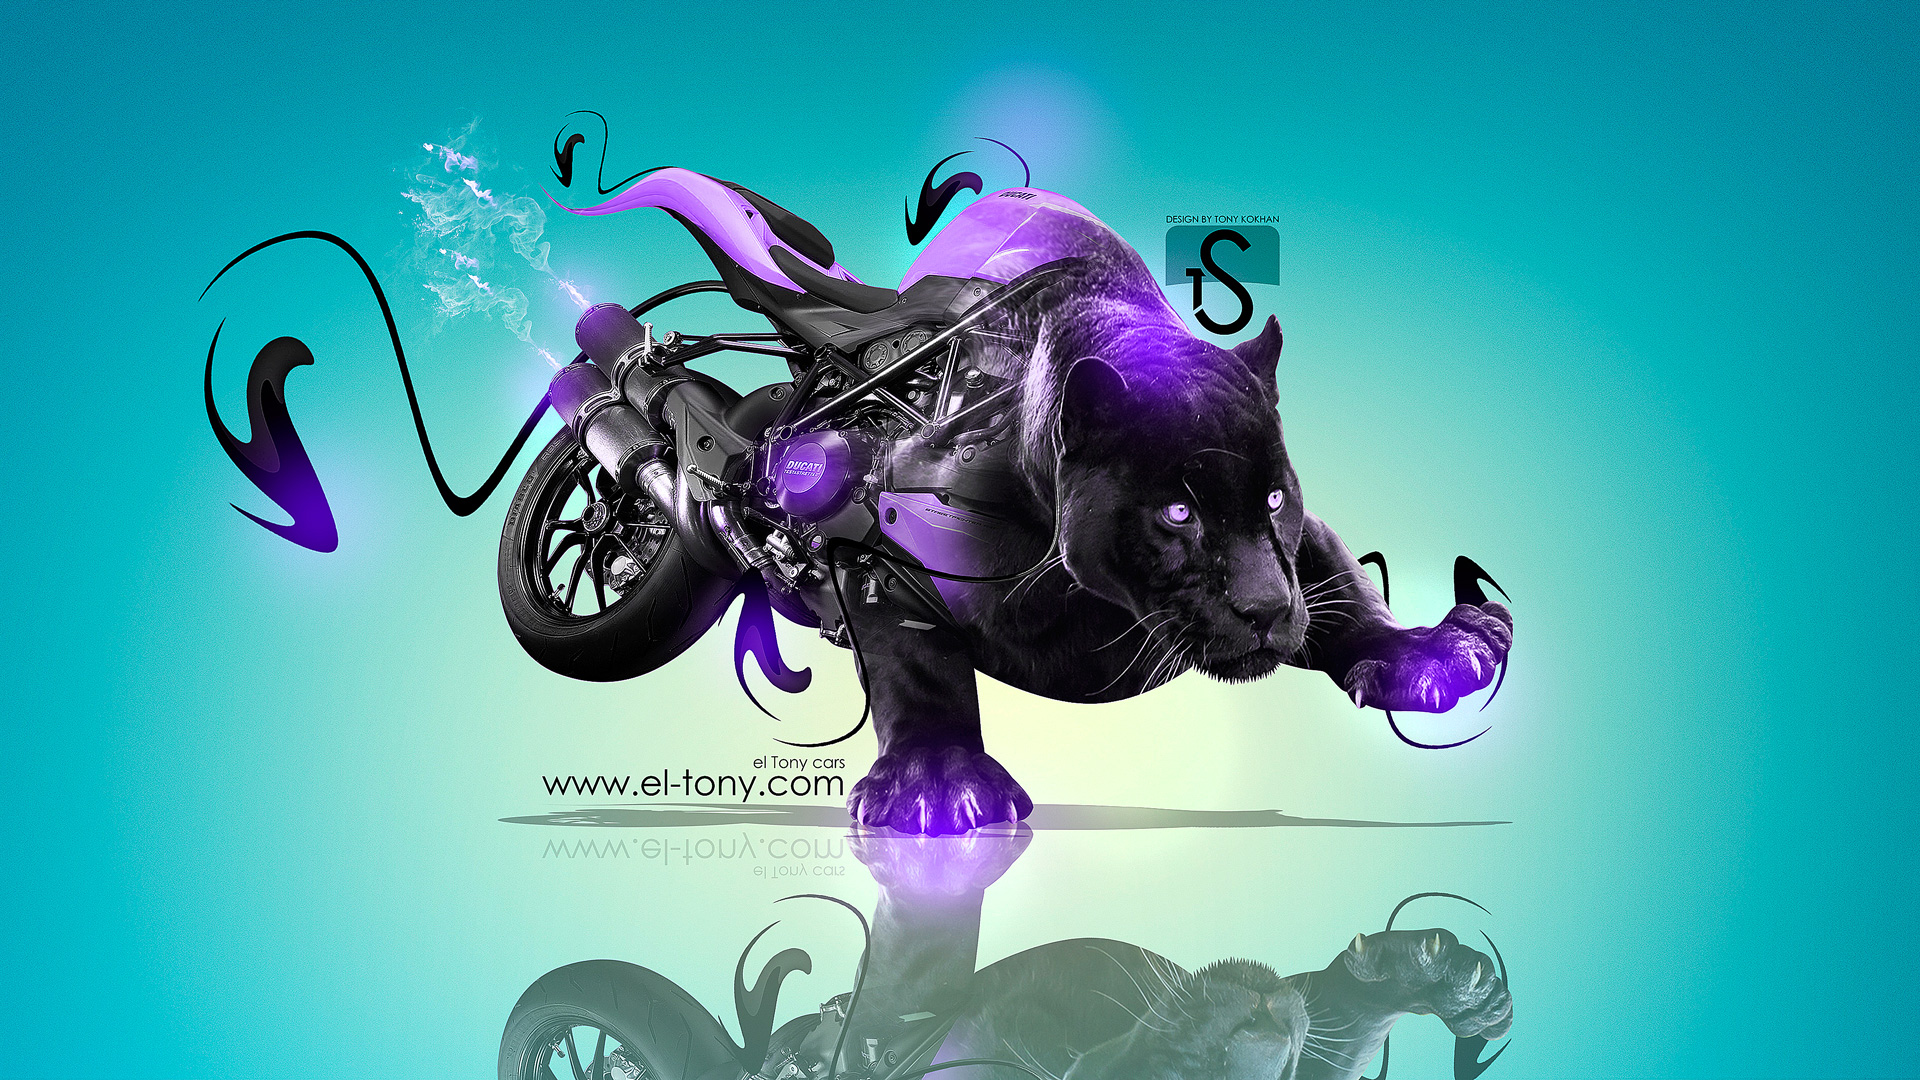 Awesome Moto Ducati Streetfighter 848 Fantasy Panter 2013 Violet